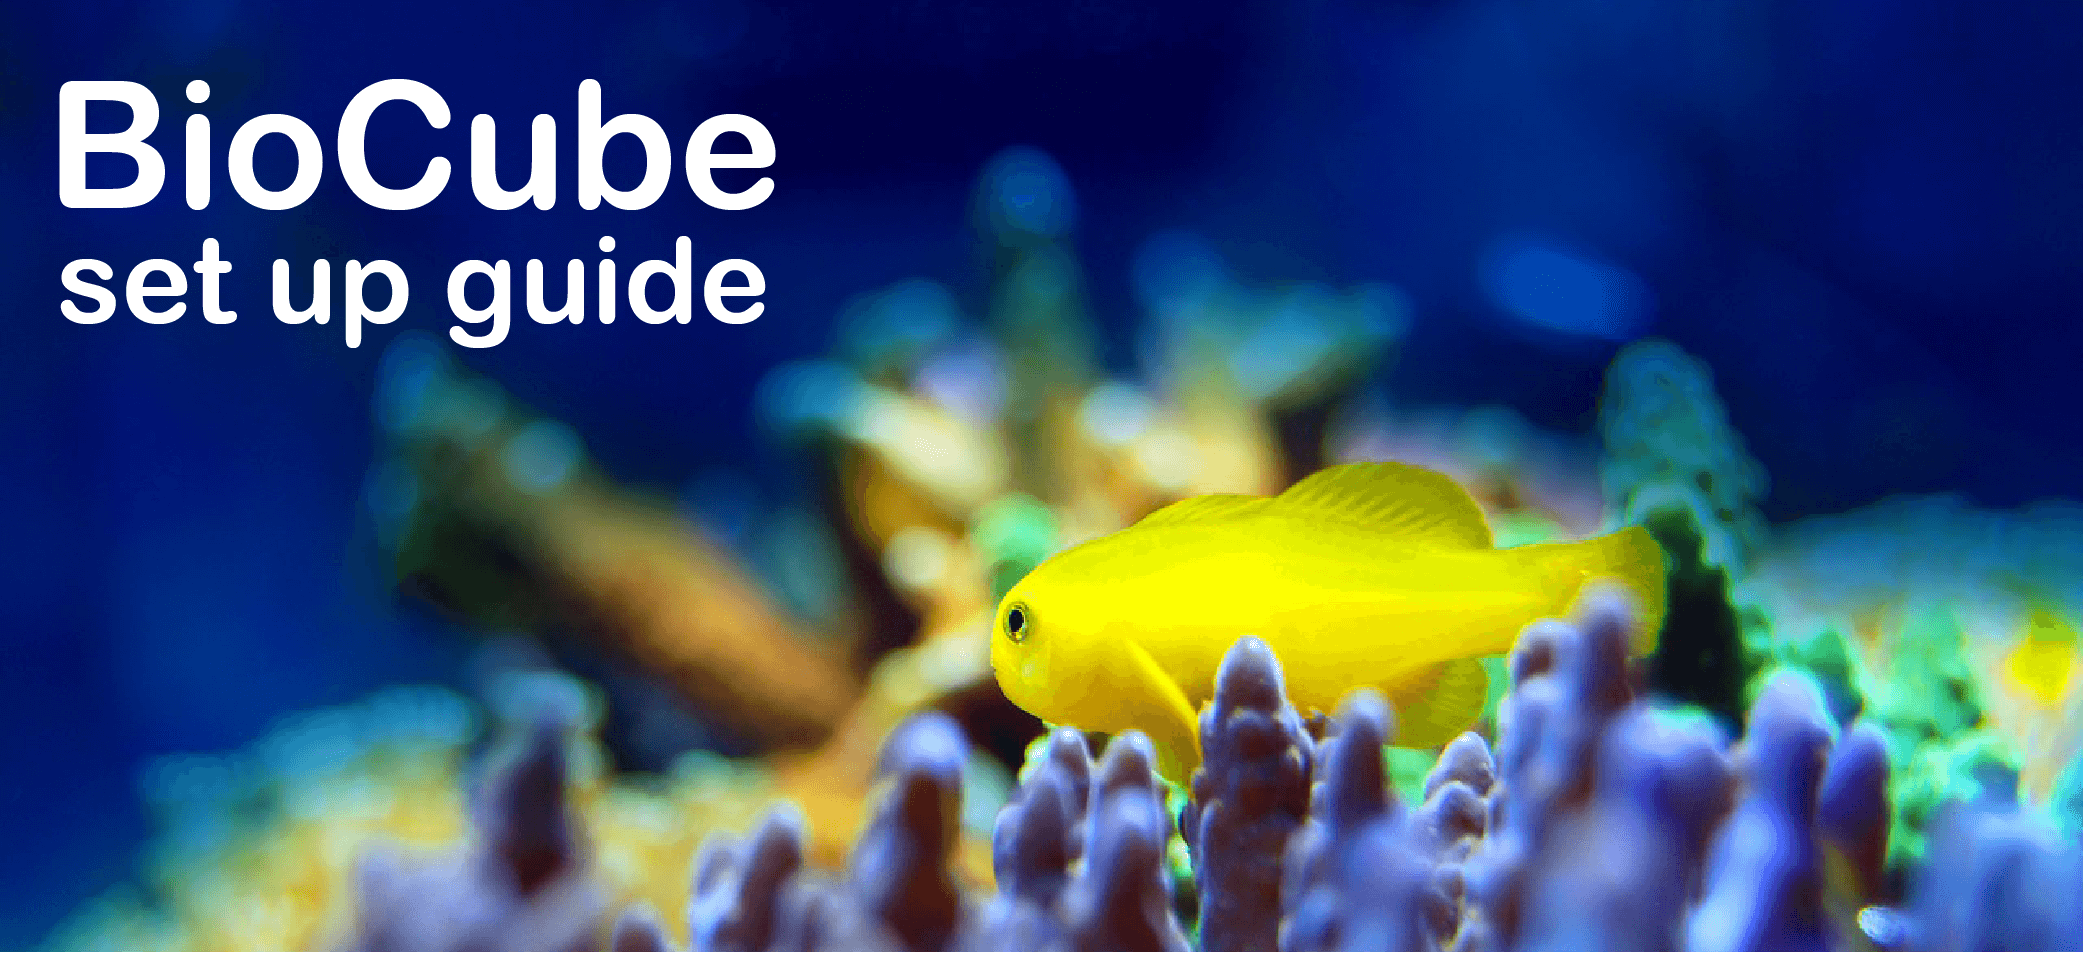 biocube set up guide